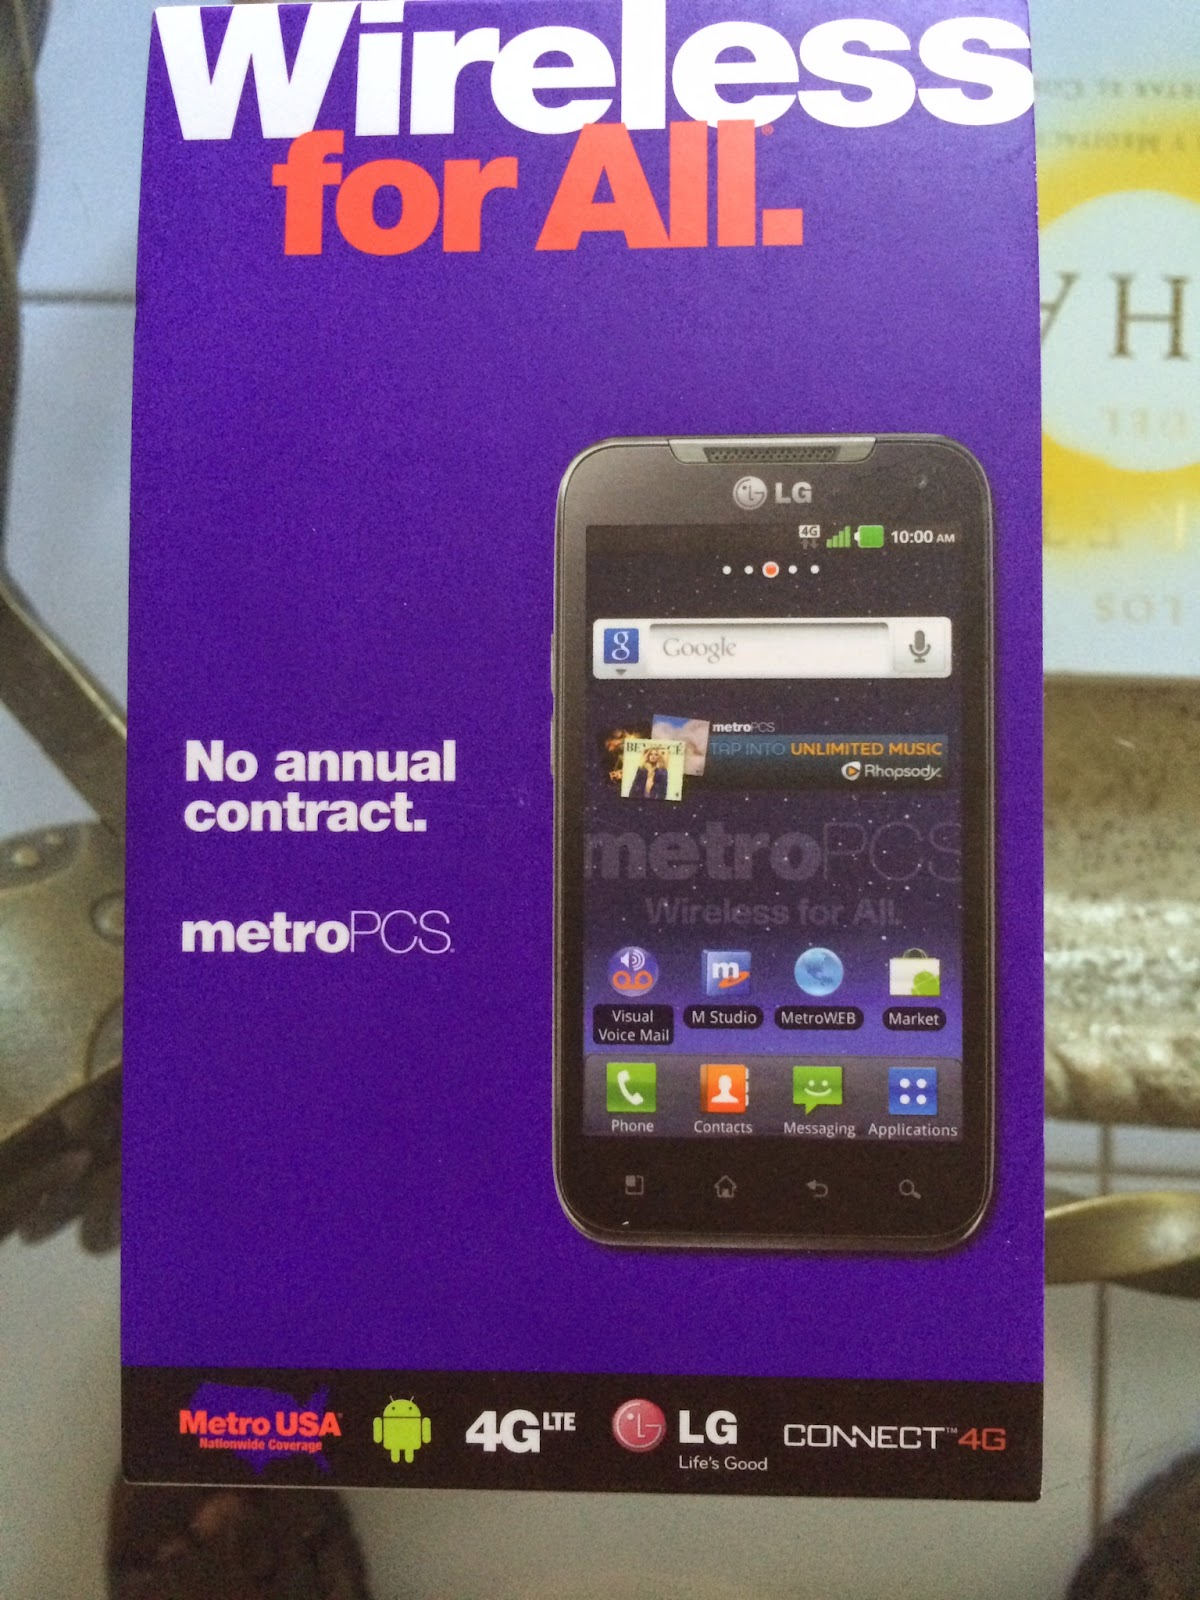 AutoChess: How to factory reset LG-MS840 from metro pcs